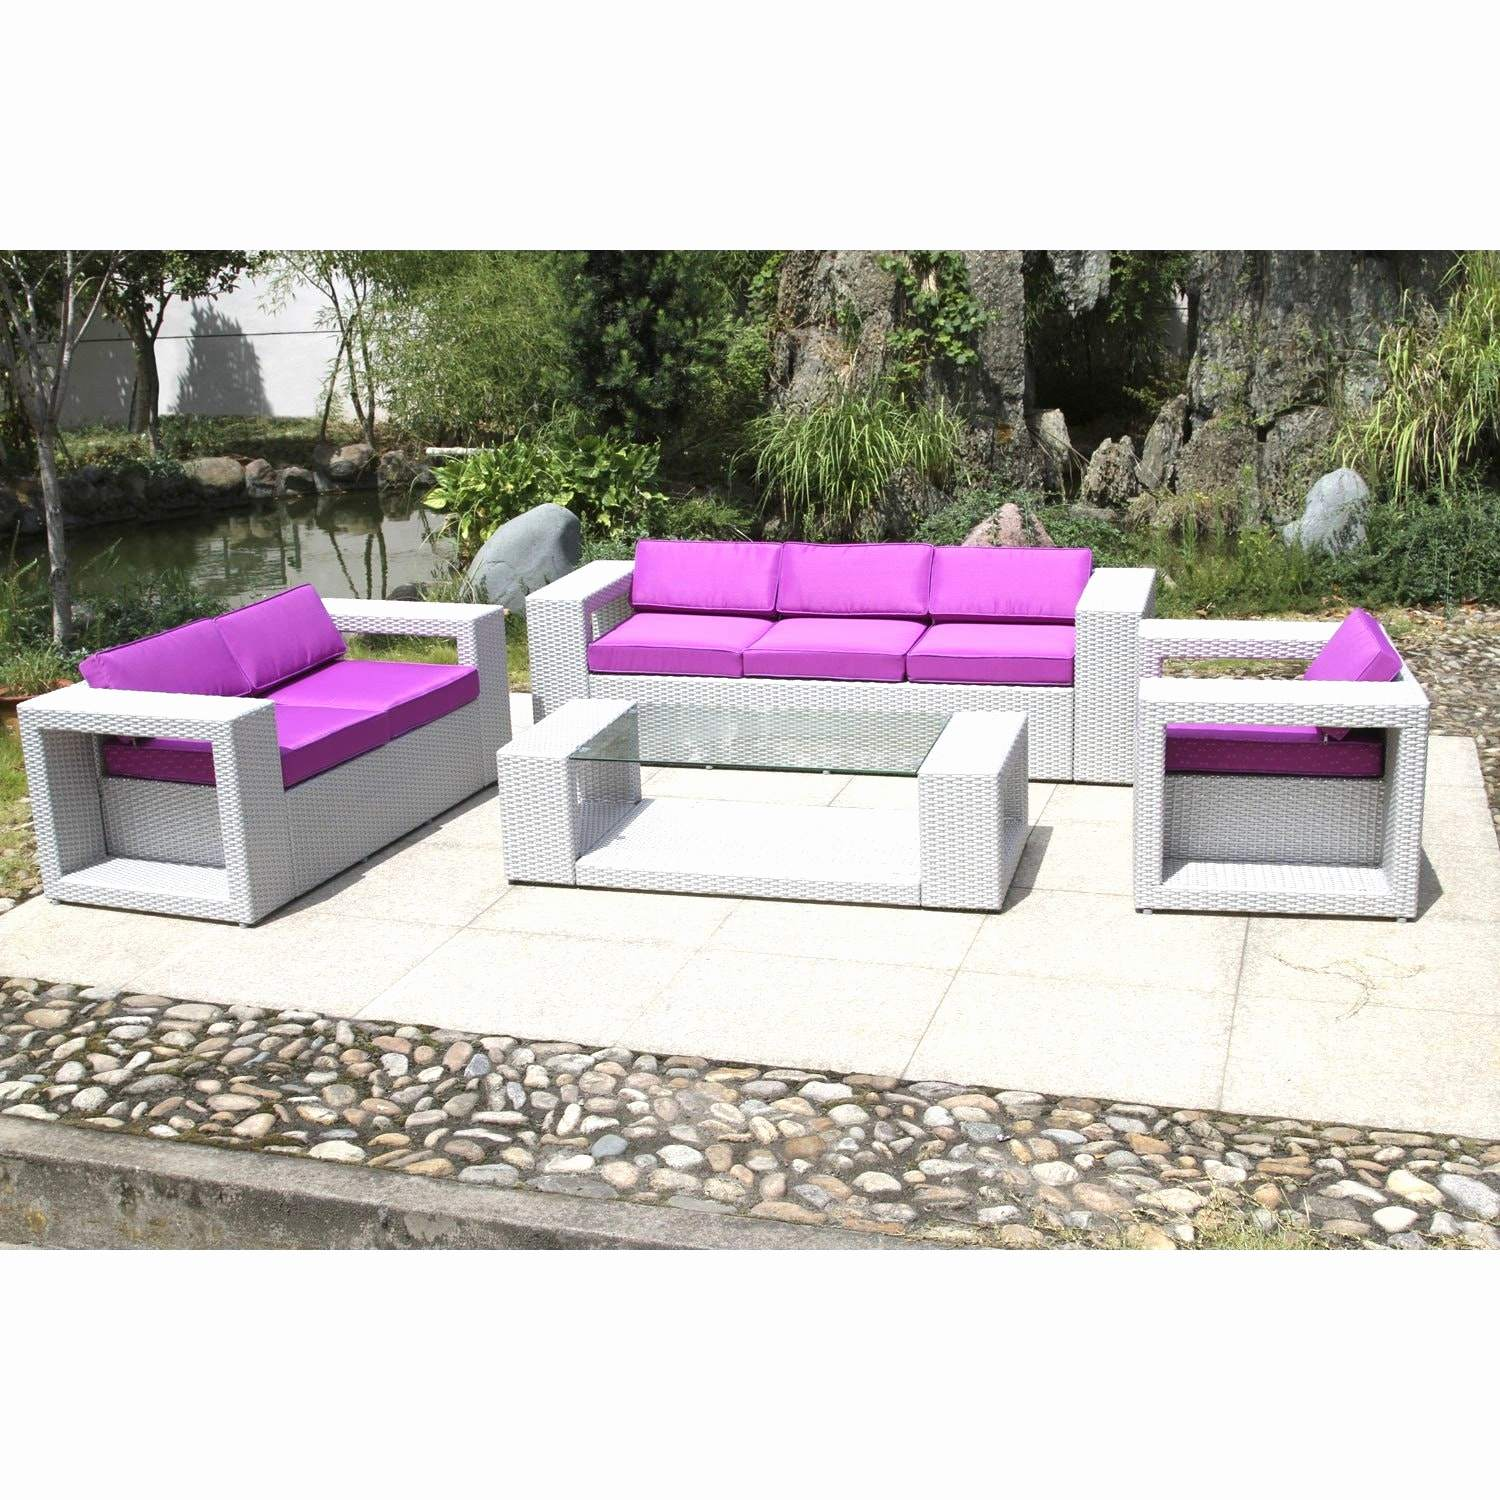 salon de jardin soldes leroy merlin jardin piscine et cabane. Black Bedroom Furniture Sets. Home Design Ideas